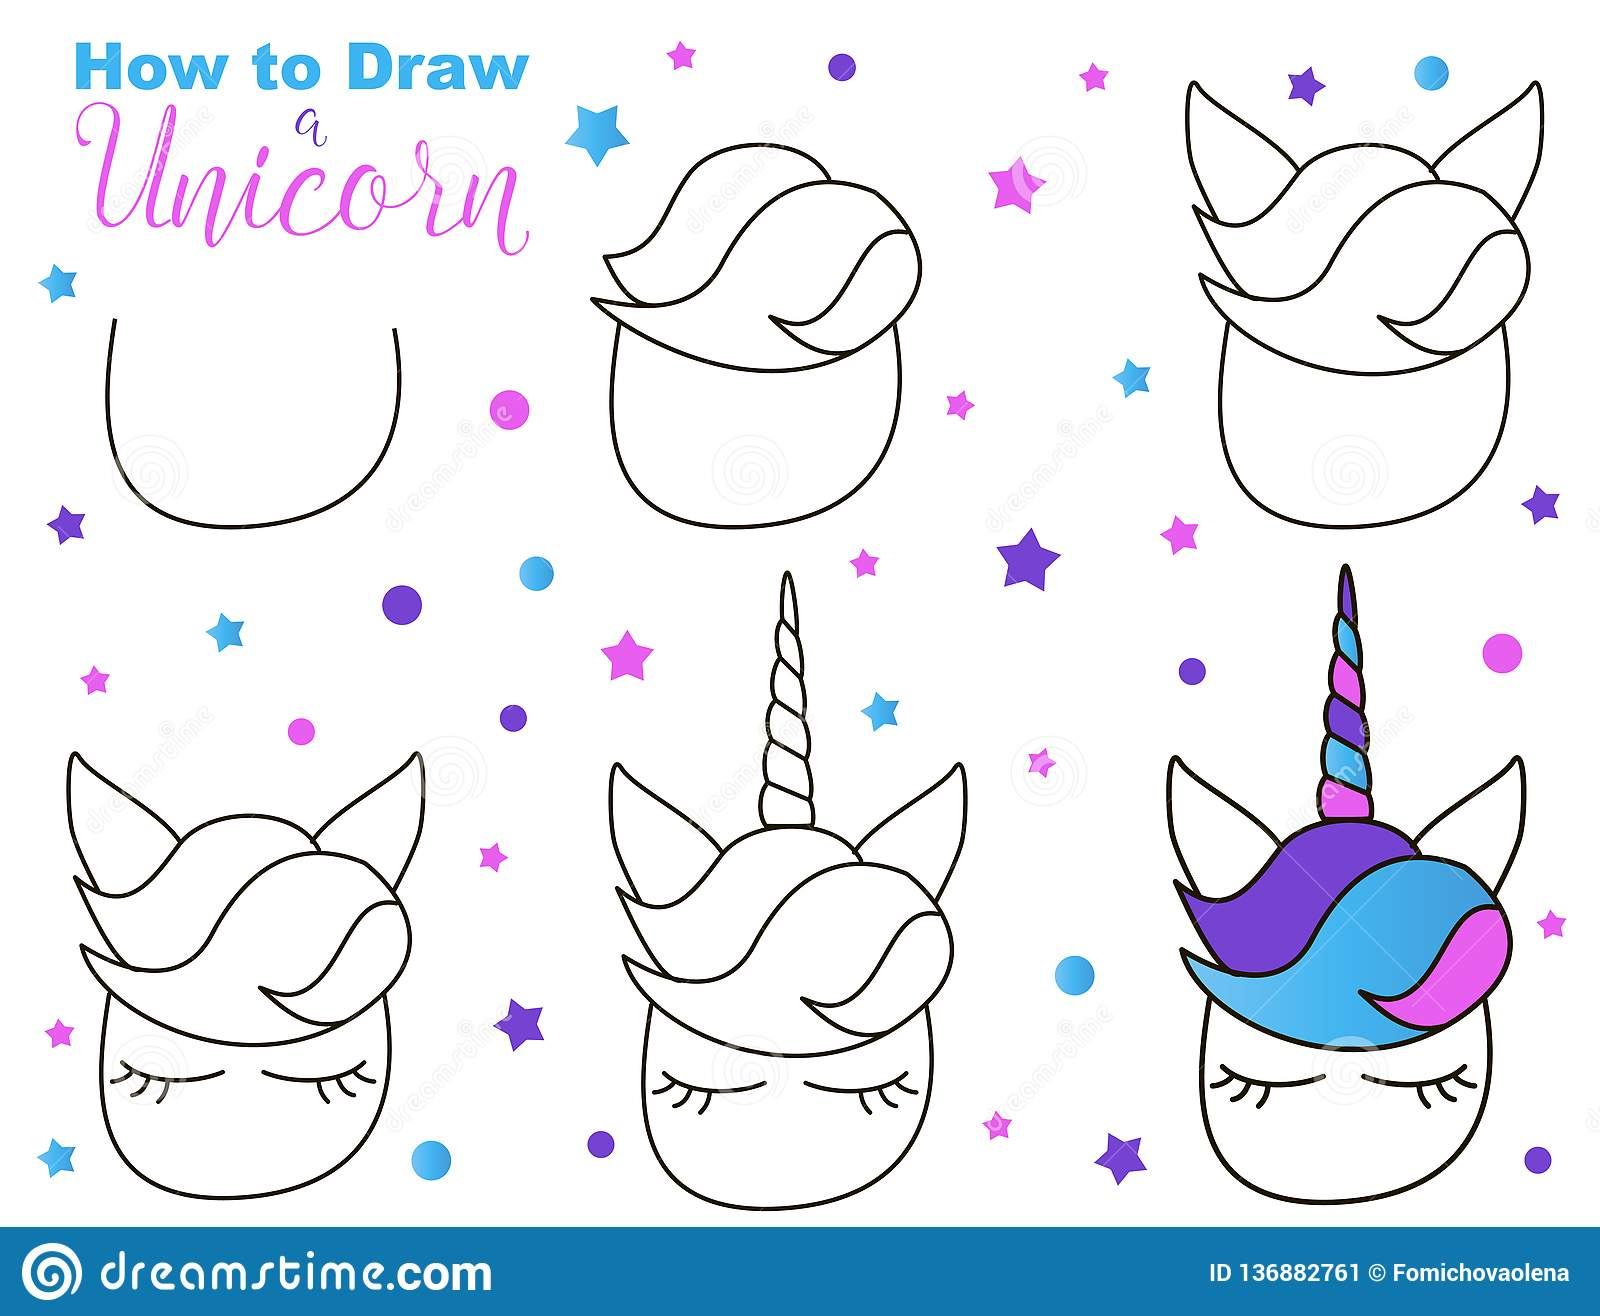 How To Draw Cute Unicorn Easy Steps For Children Activity